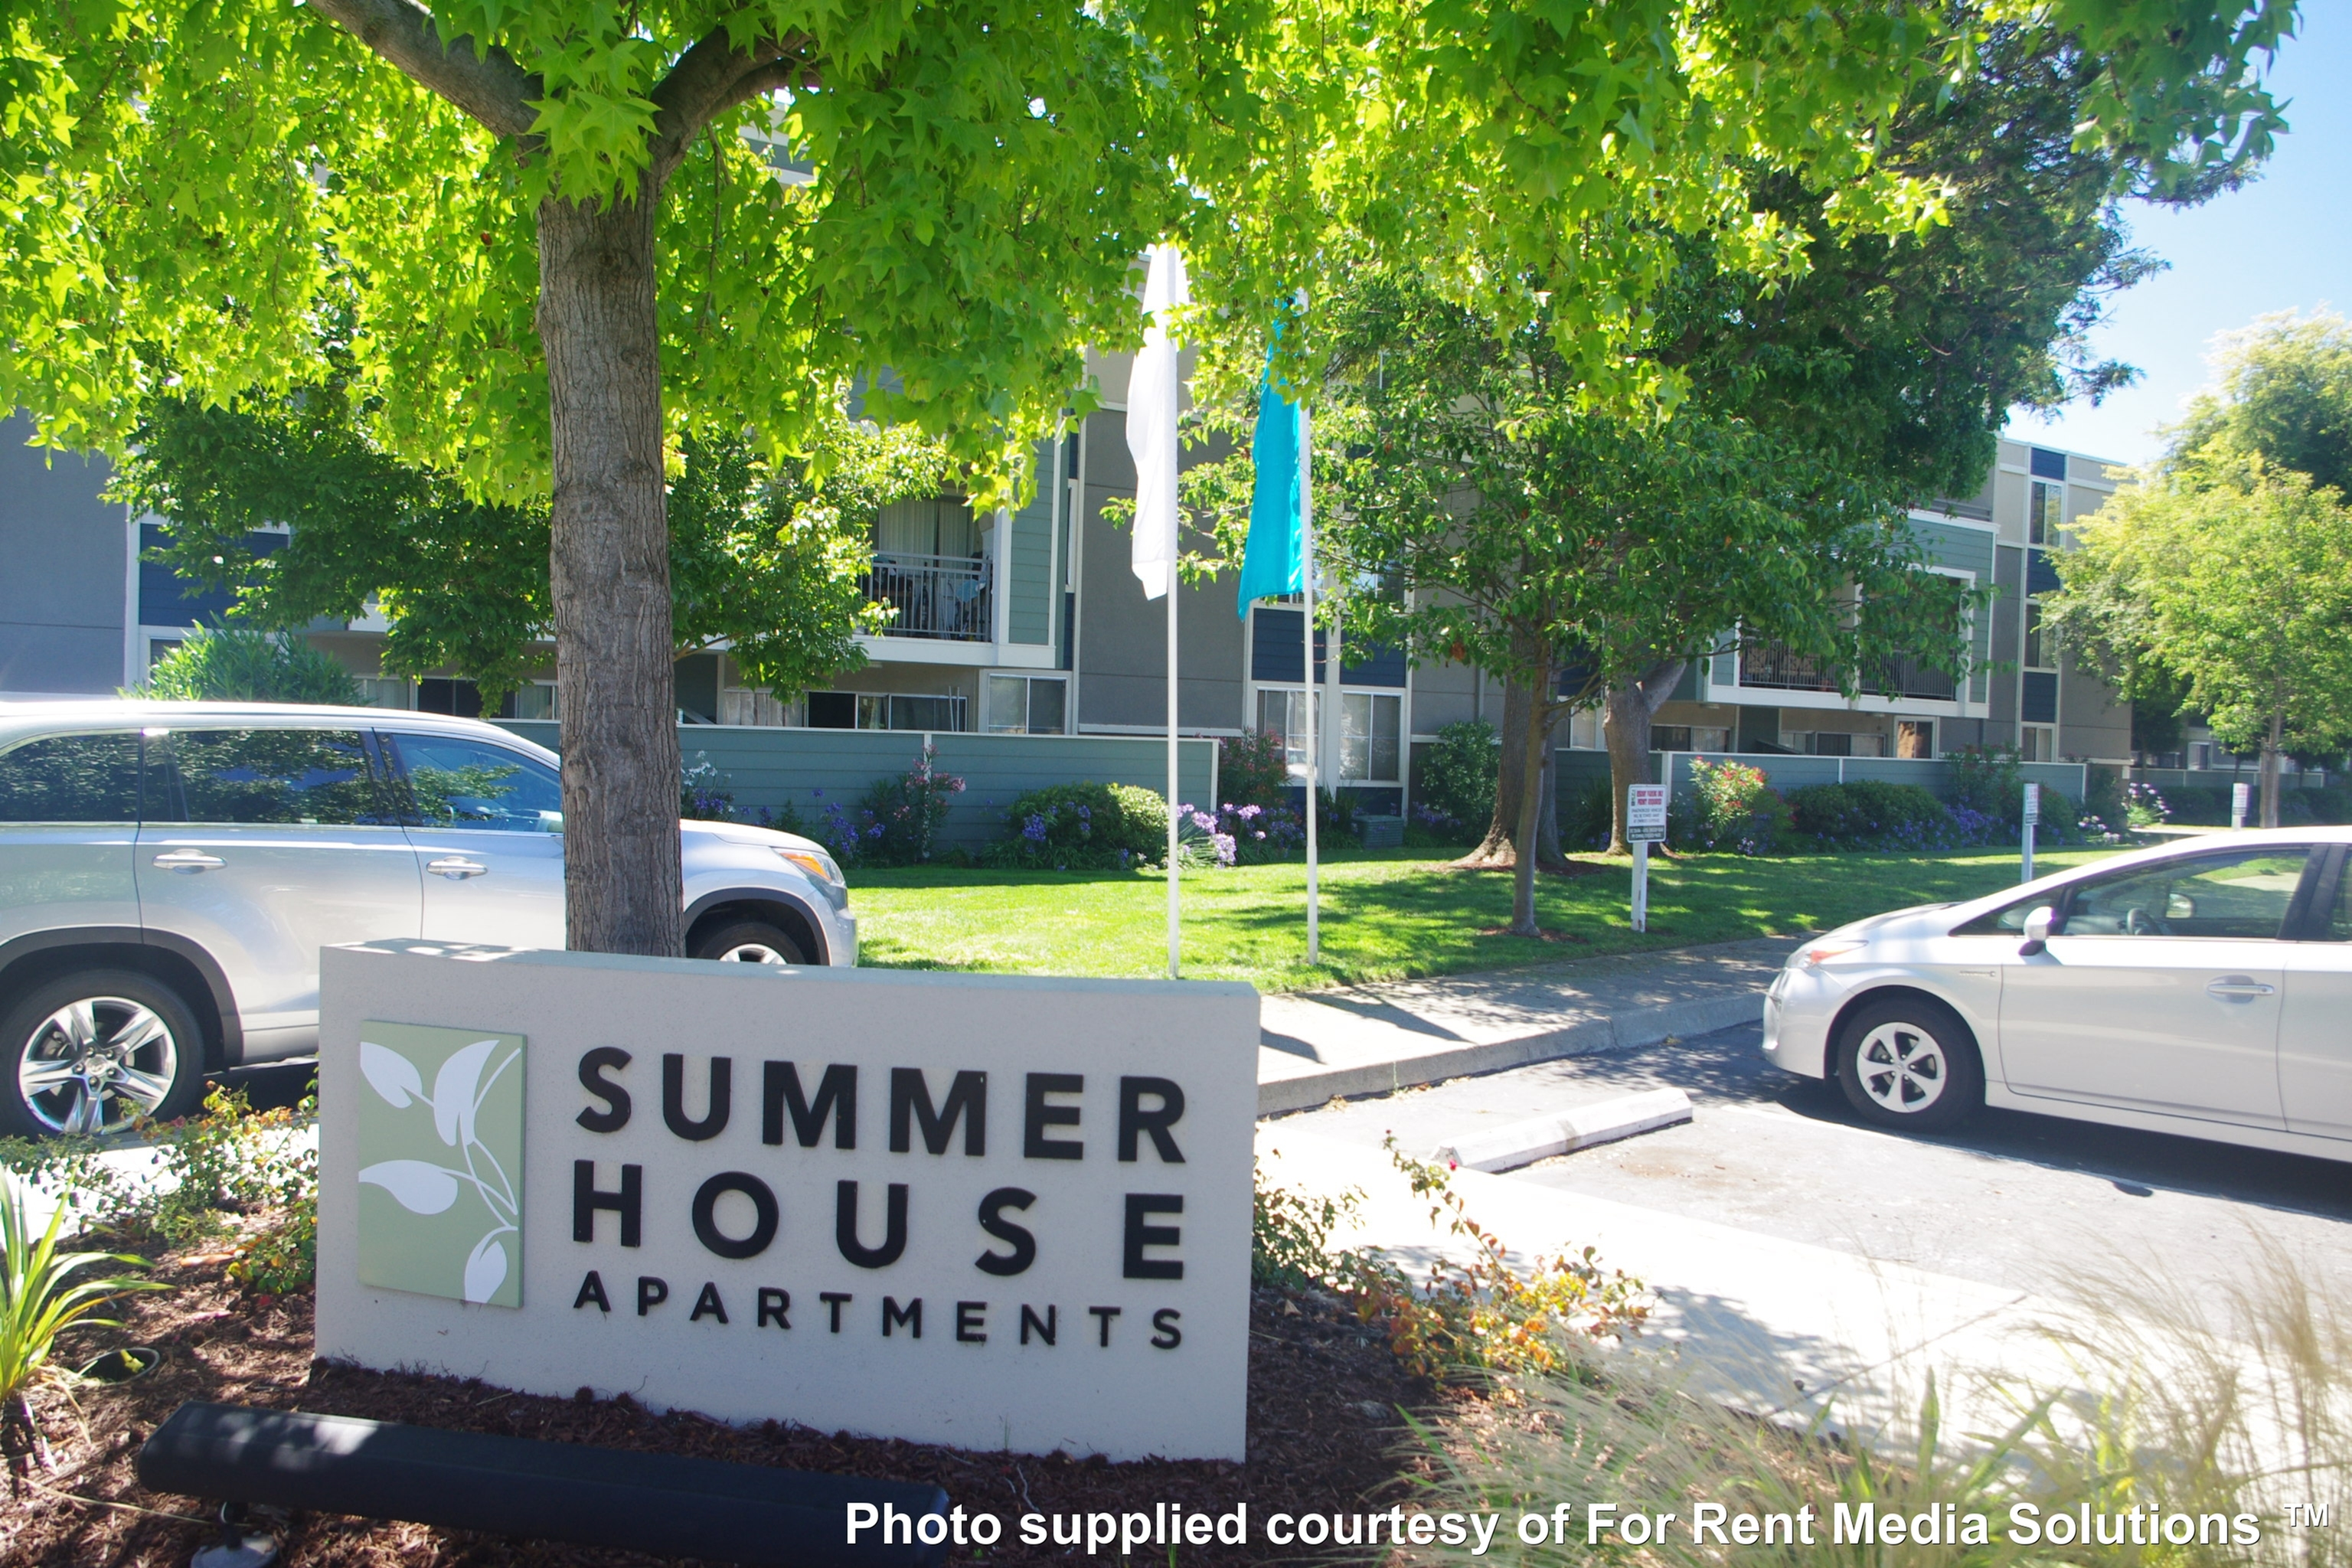 Good Find An Apartment For Rent In Alameda, CA At Summer House Apartments. View  Floor Plans, Photos And Amenities Of Summer House Alameda Apartments.  Summer House Apartments Alameda